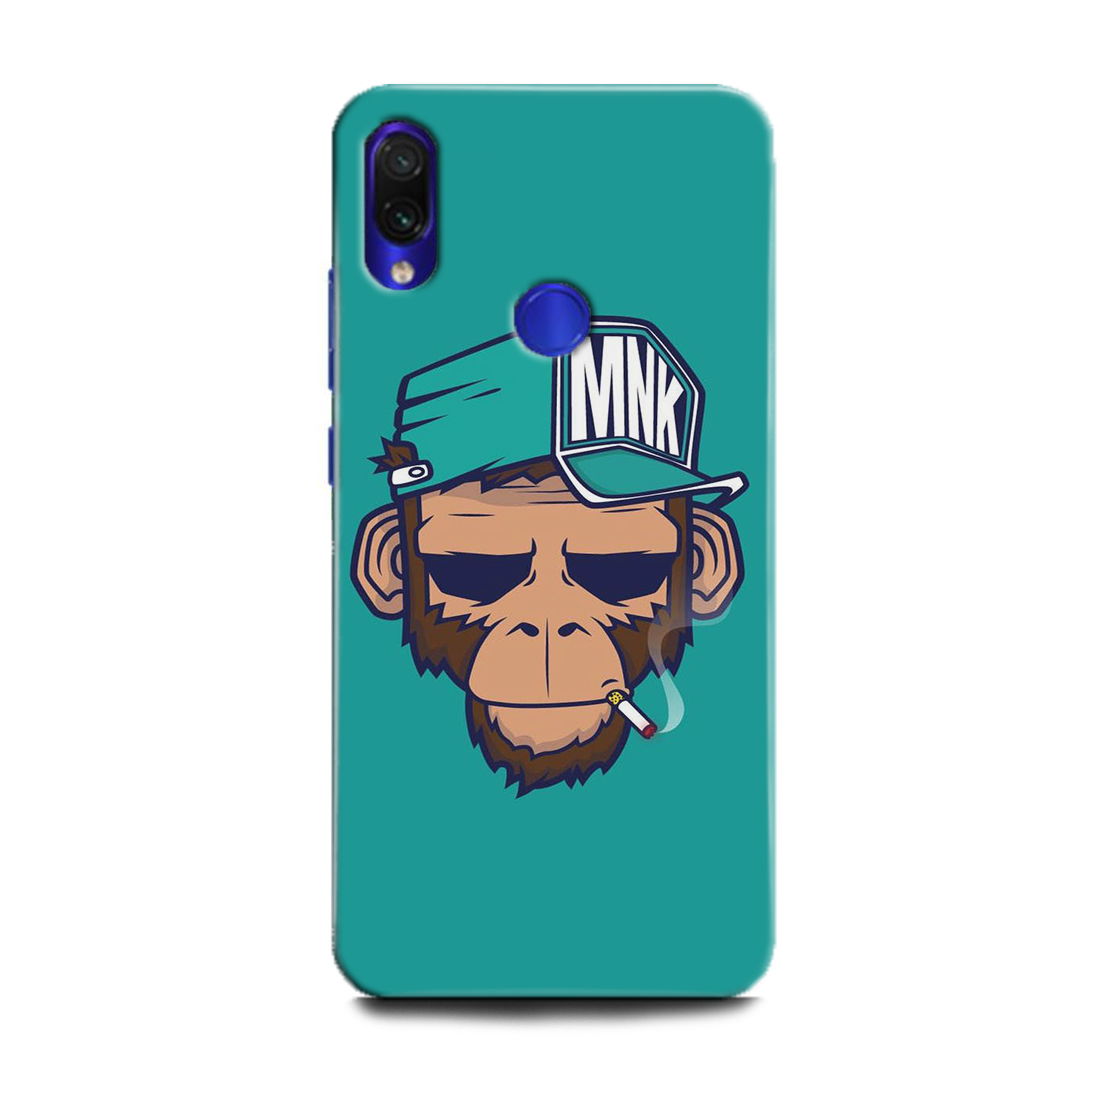 INDICRAFT Mobile Back Cover For Mi Redmi Note 7s / Hard Case (Funky, Monkey, Hat and ciggrate, MZB7742IN) (AB-RedmiNote7s-0114)